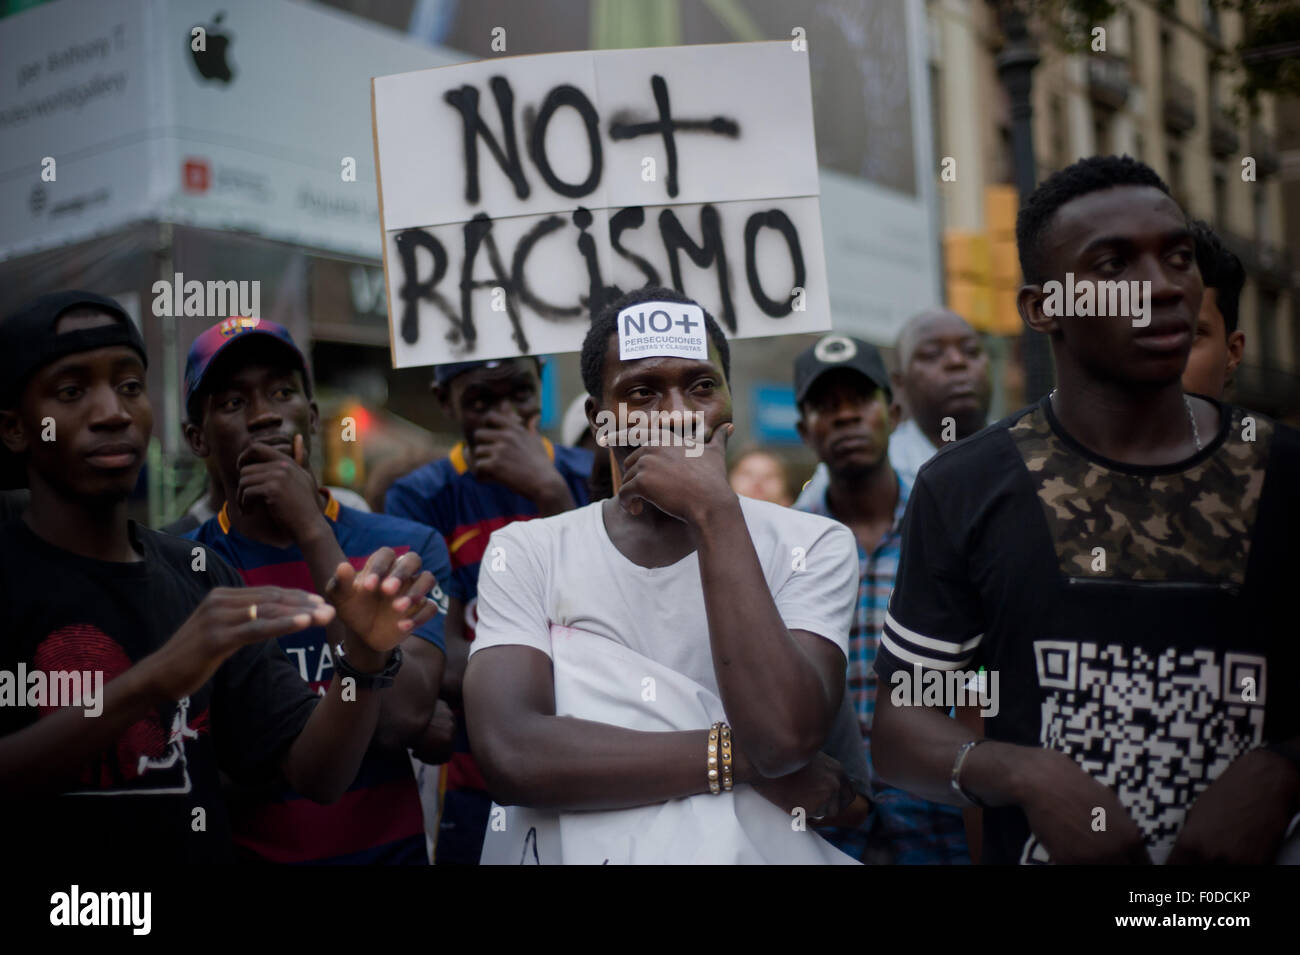 Demonstrators during a march against racism and police in Barcelona (Spain) on 11 August 2015. - Stock Image